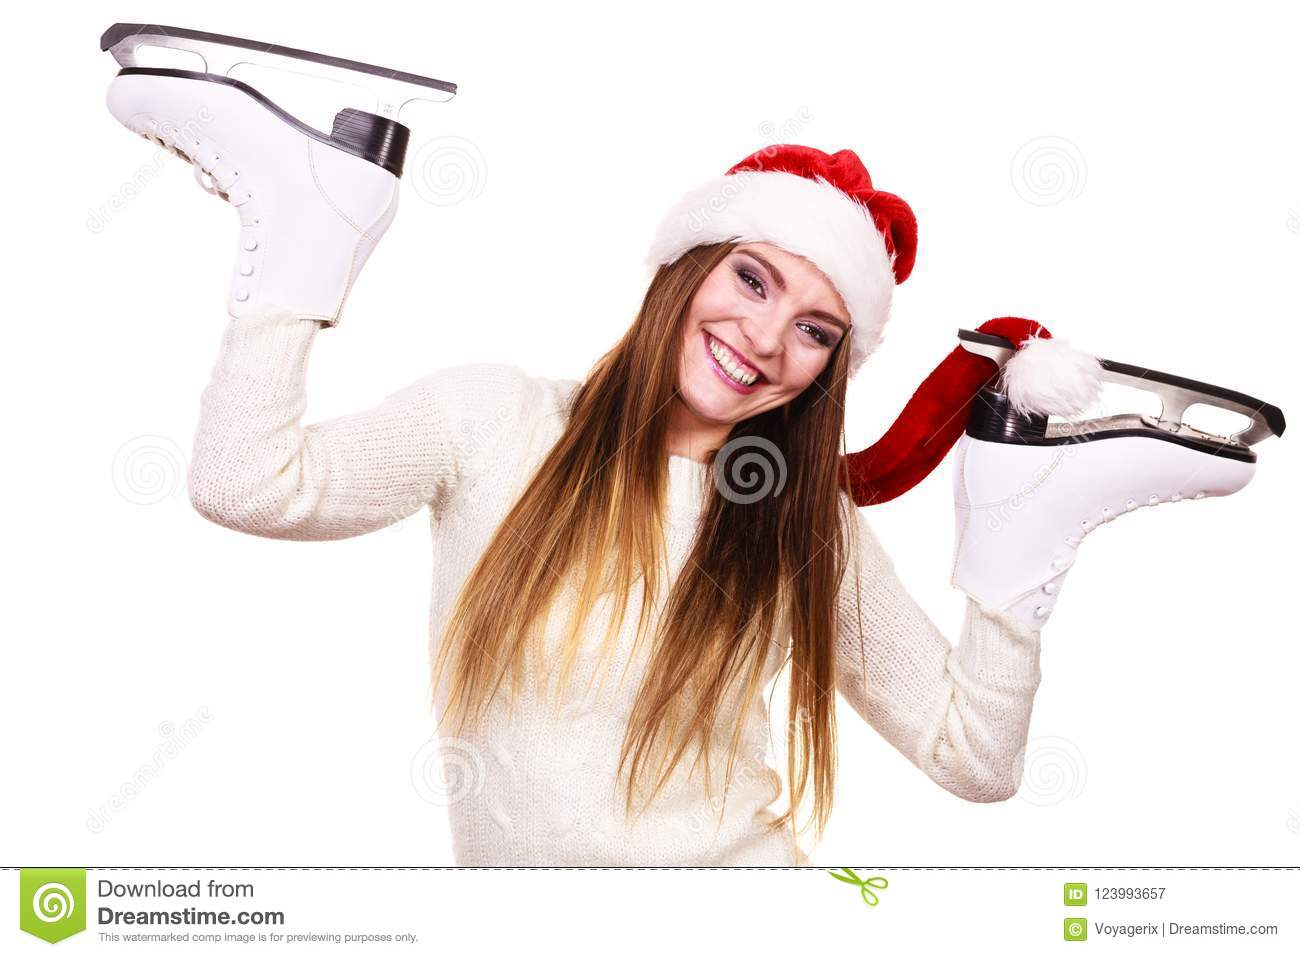 61403a13358 Woman Santa Claus With Ice Skates Stock Image - Image of gift ...